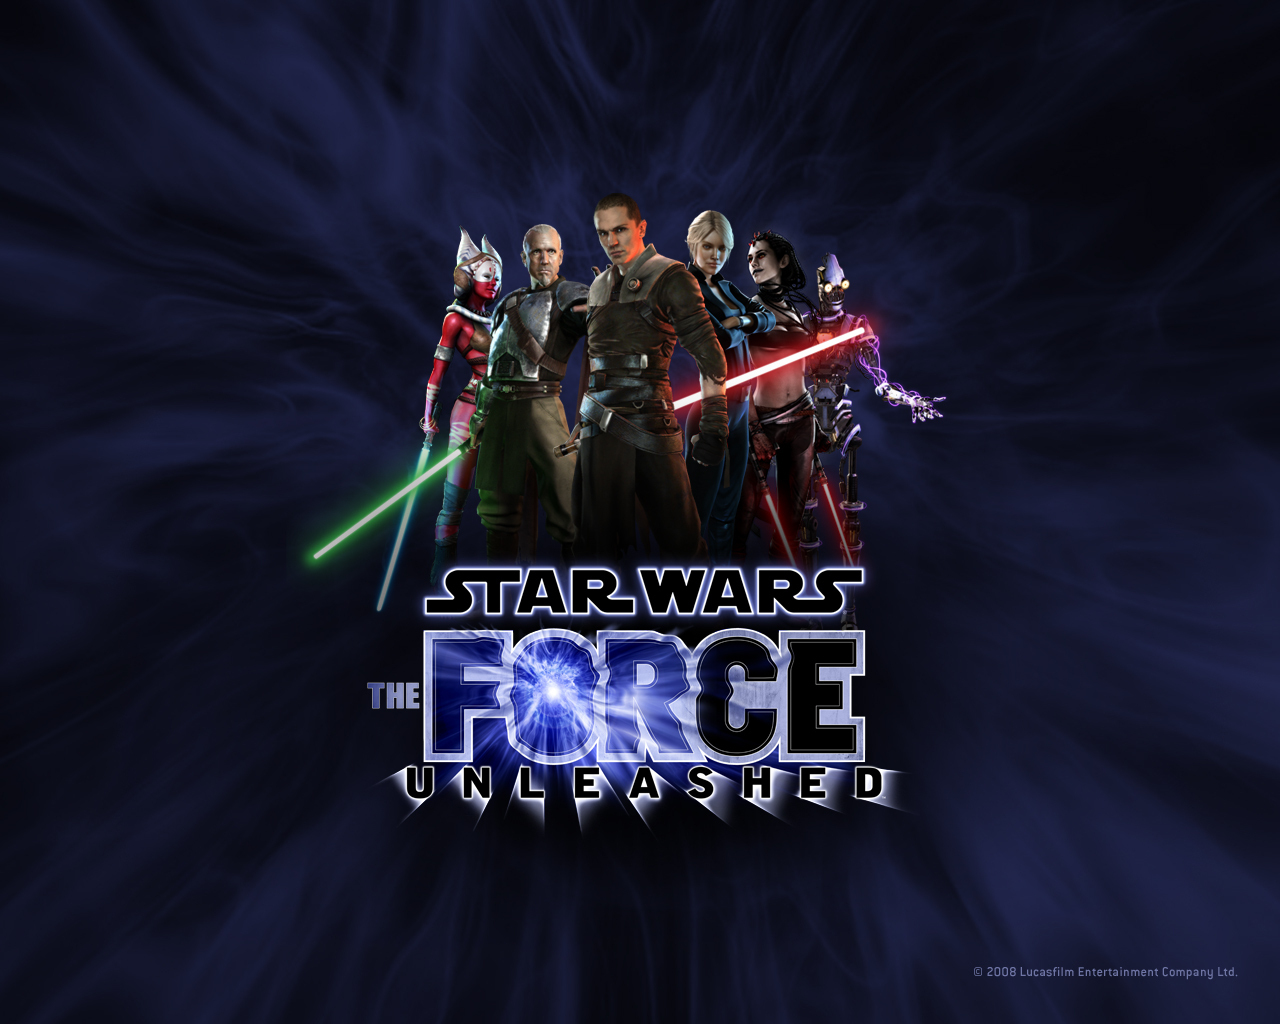 star wars:the force unleashed images star wars: the force unleased